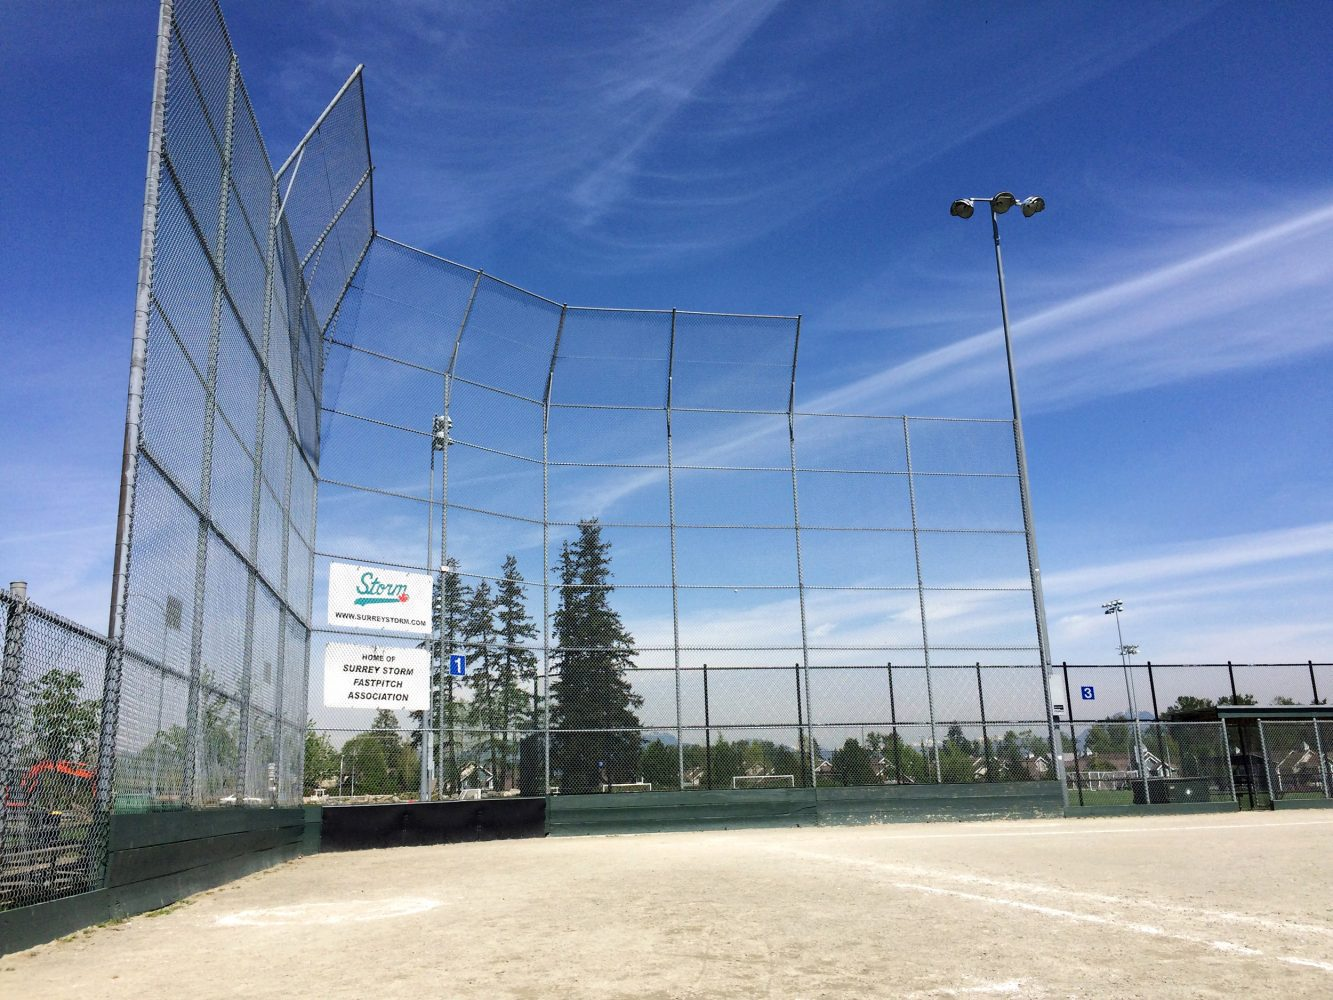 Cloverdale Athletic Park